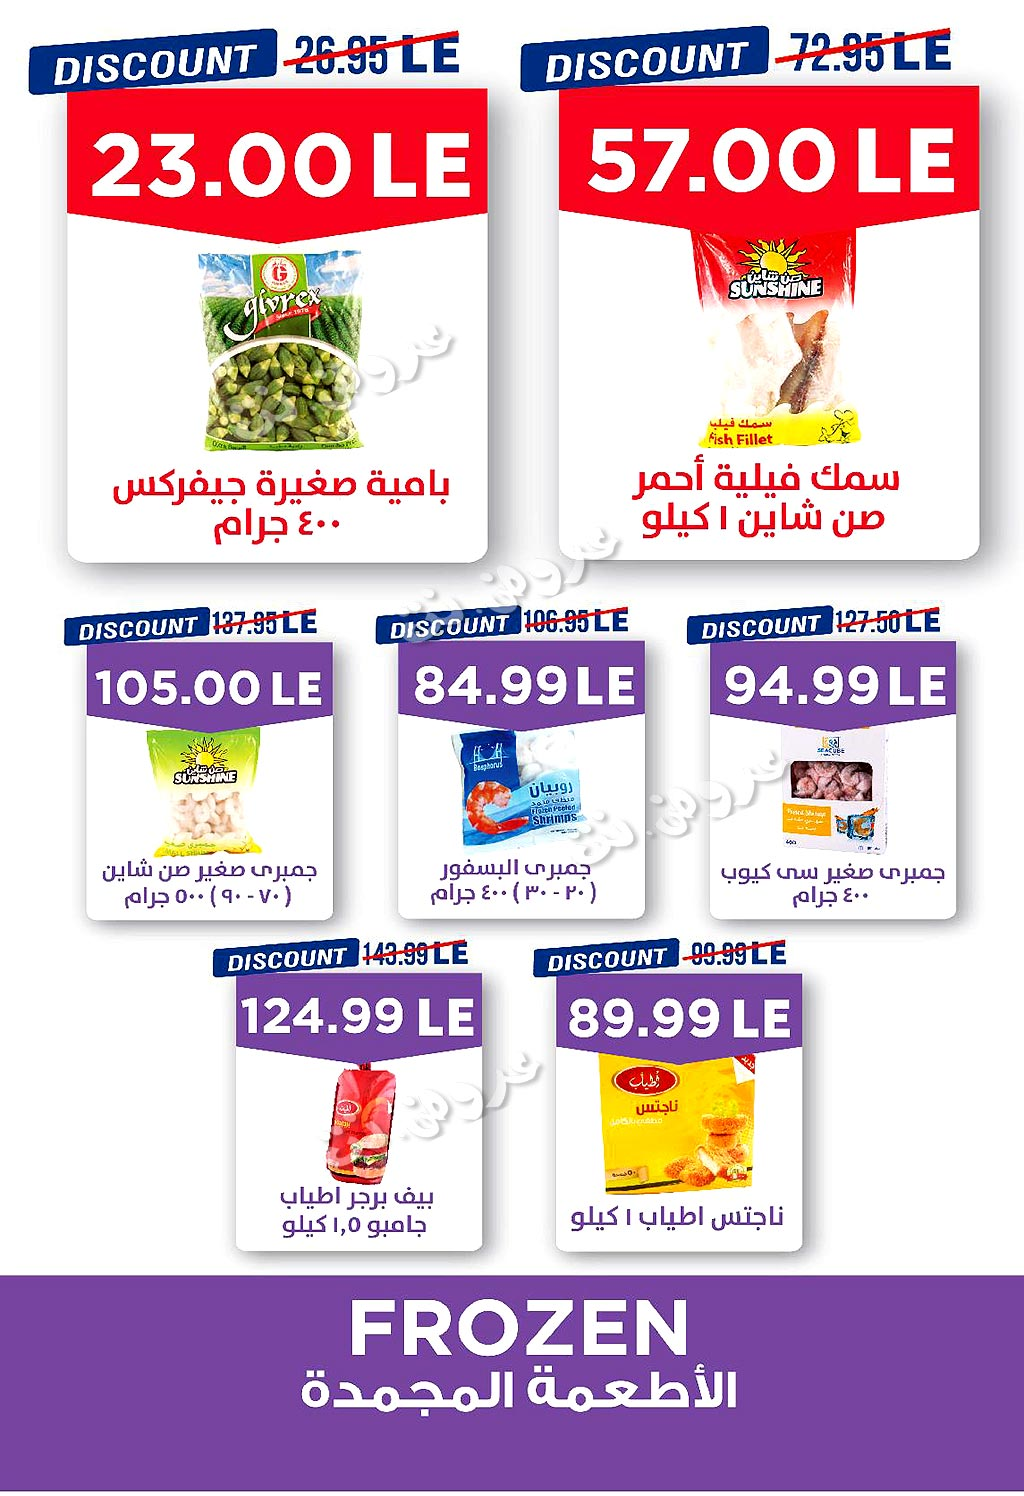 metro offers from 1may to 15may 2021 page number 15 عروض مترو من 1 مايو حتى 15 مايو 2021 صفحة رقم 15